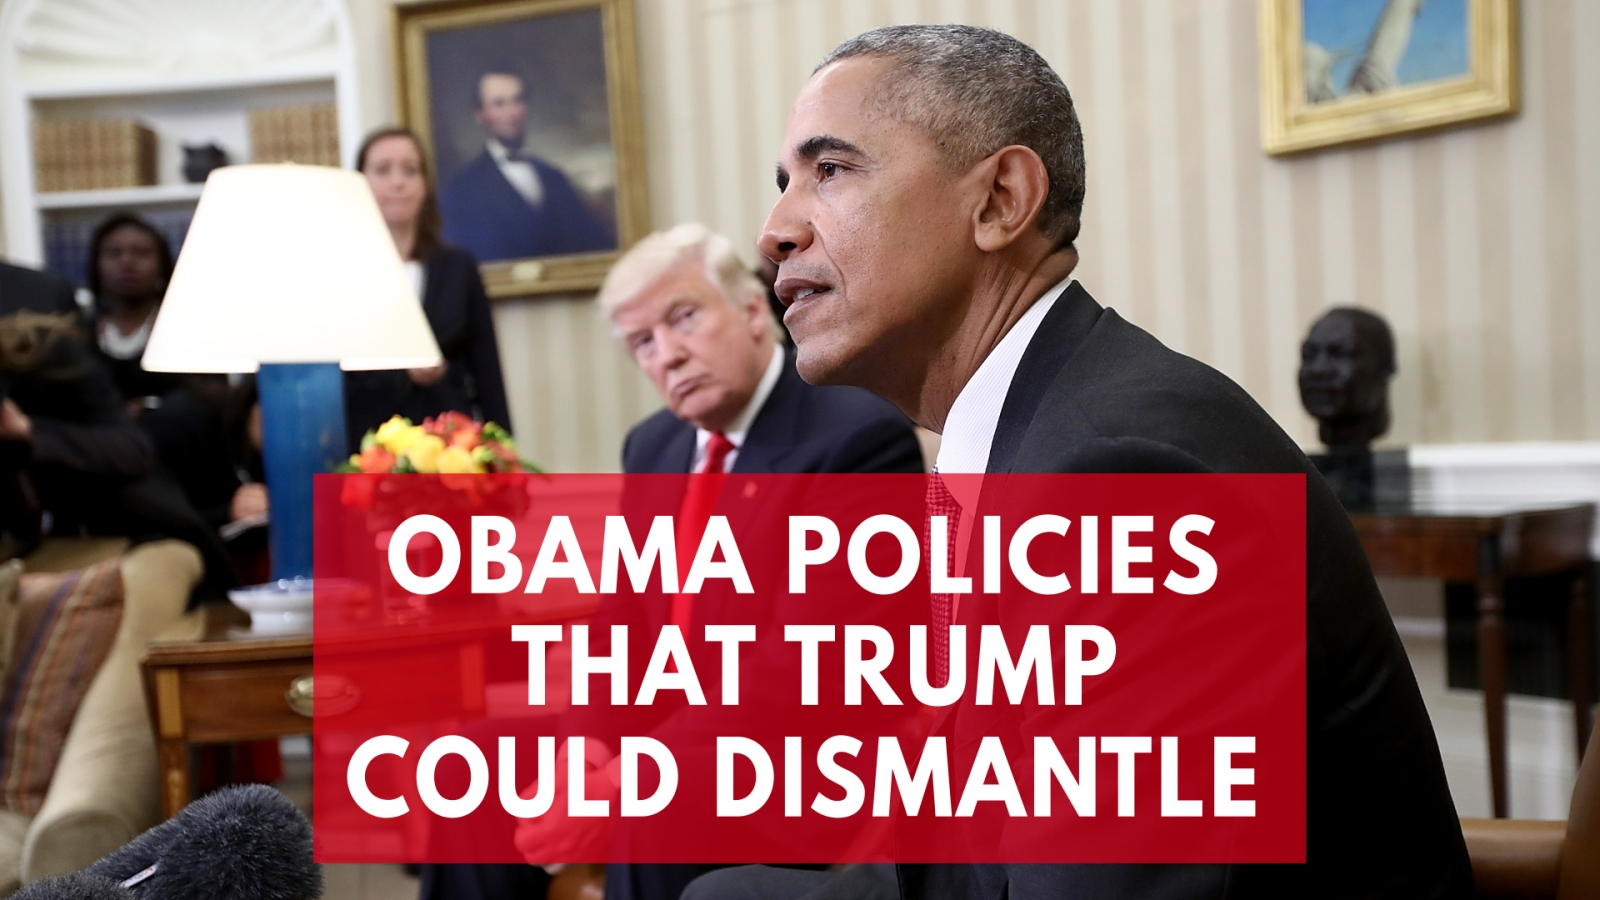 obama-policies-that-president-trump-could-dismantle-in-2018